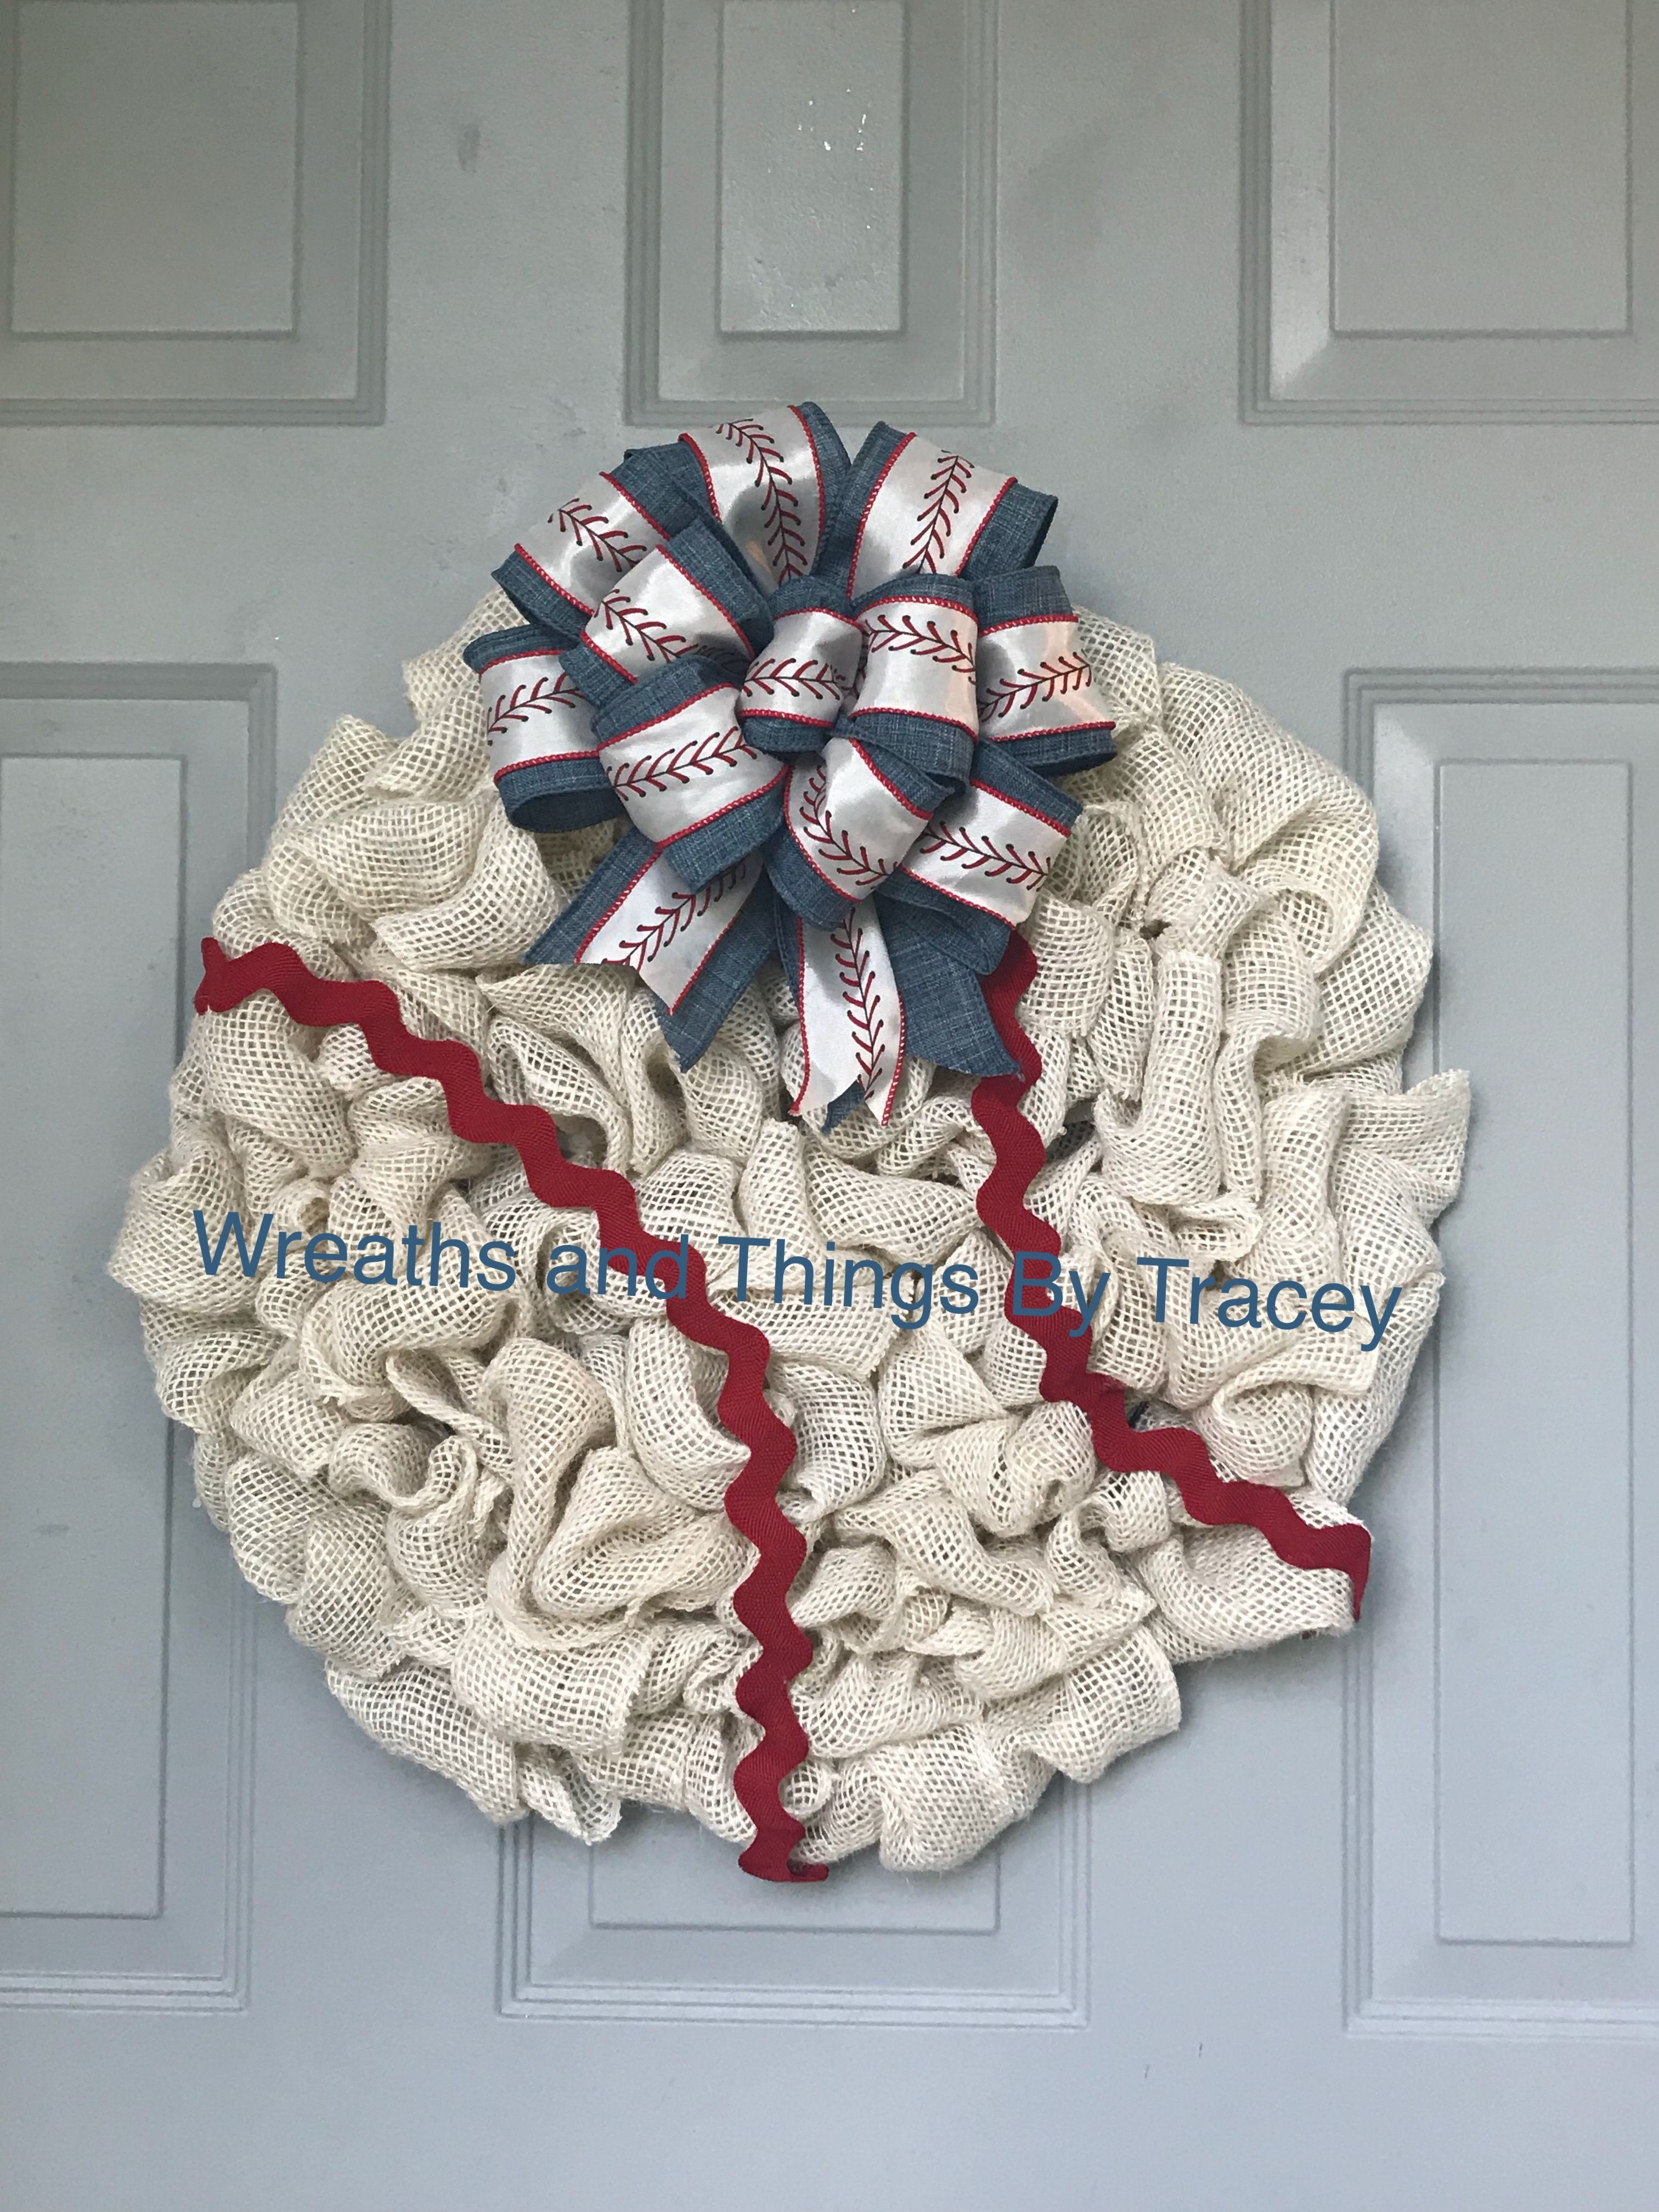 Baseball 2   Burlap   2018   Wreaths And Things By Tracey